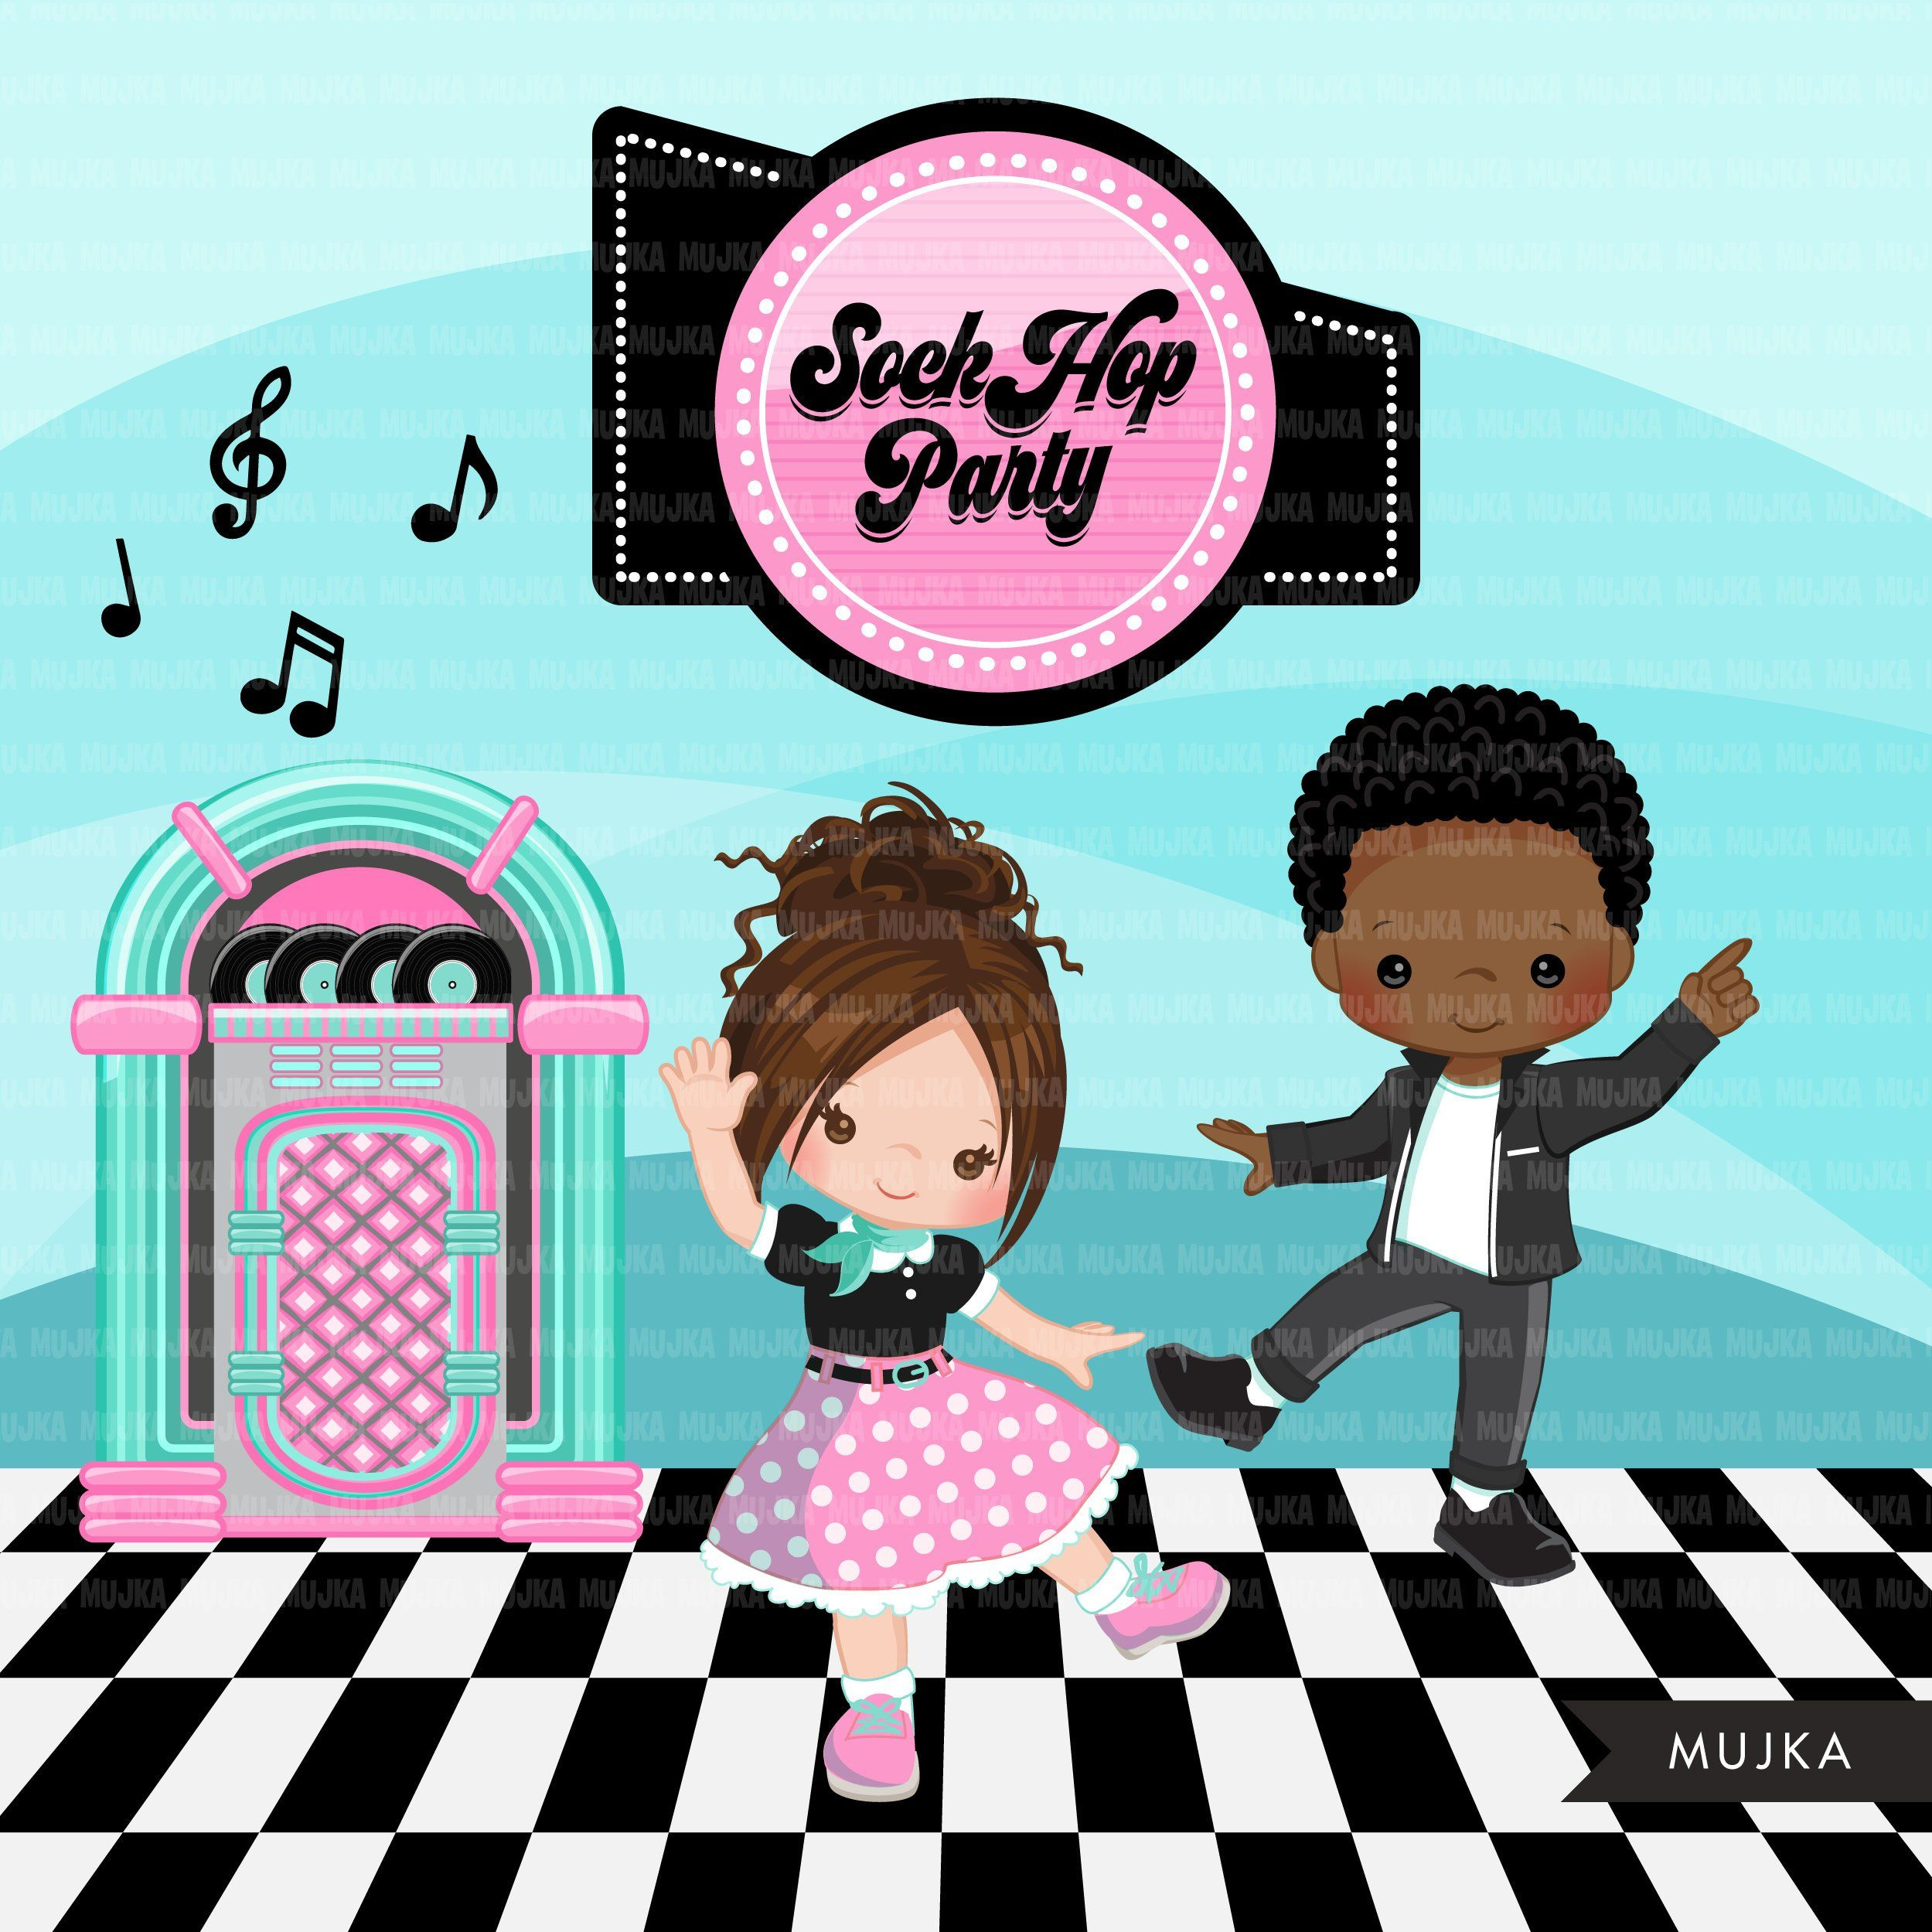 50s party clipart png black and white Sock Hop Party Clipart. 50\'s retro diner, jukebox, Cadillac, diner ... png black and white